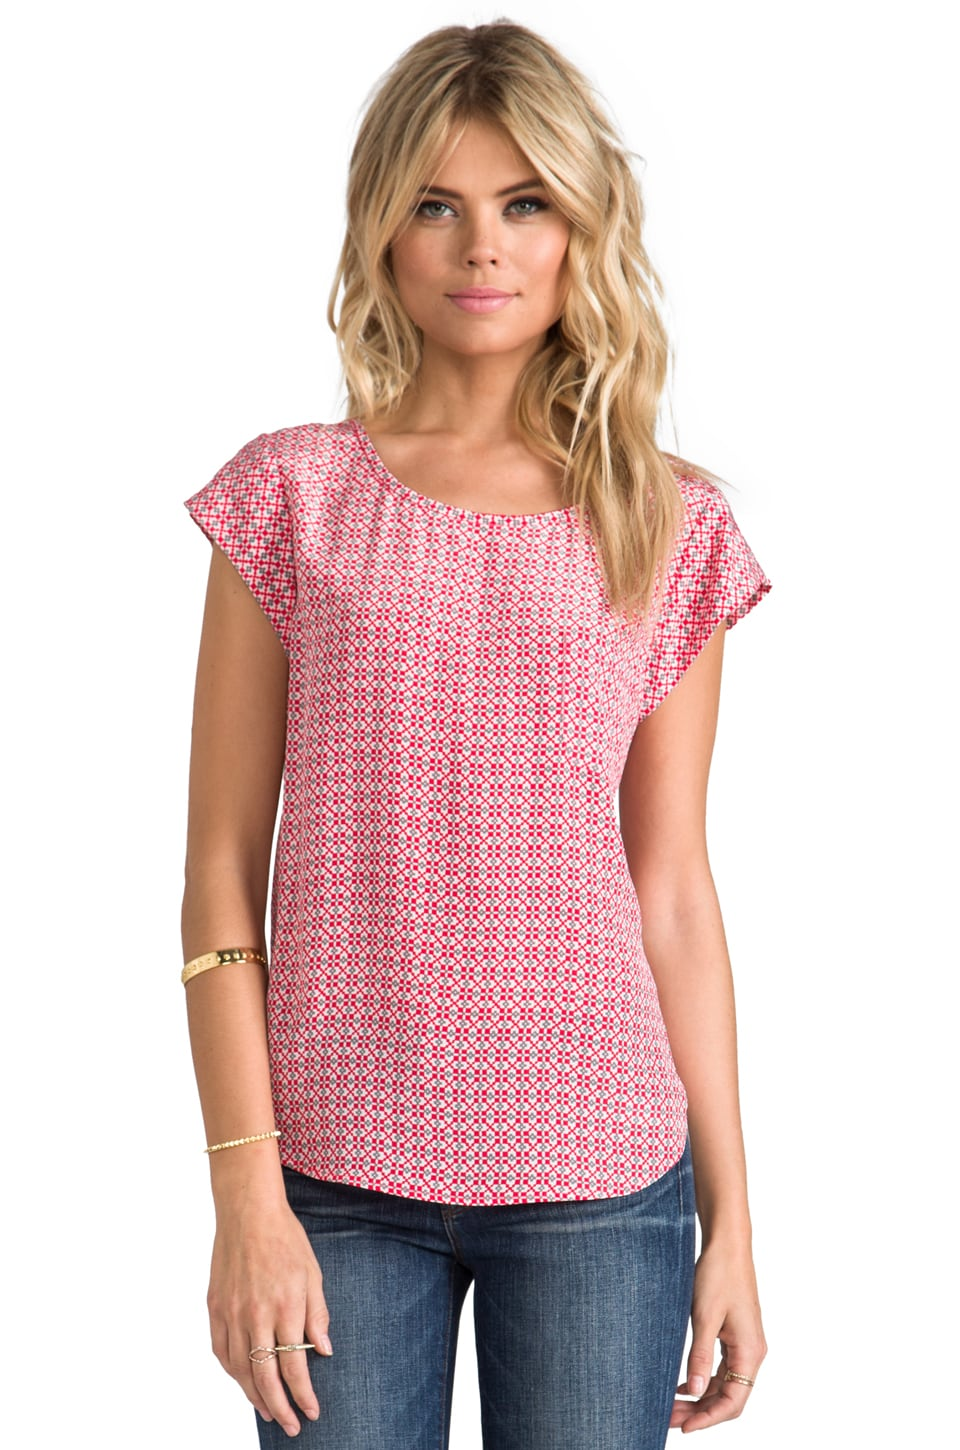 Joie Rancher Top in Carnelian w/ Grey